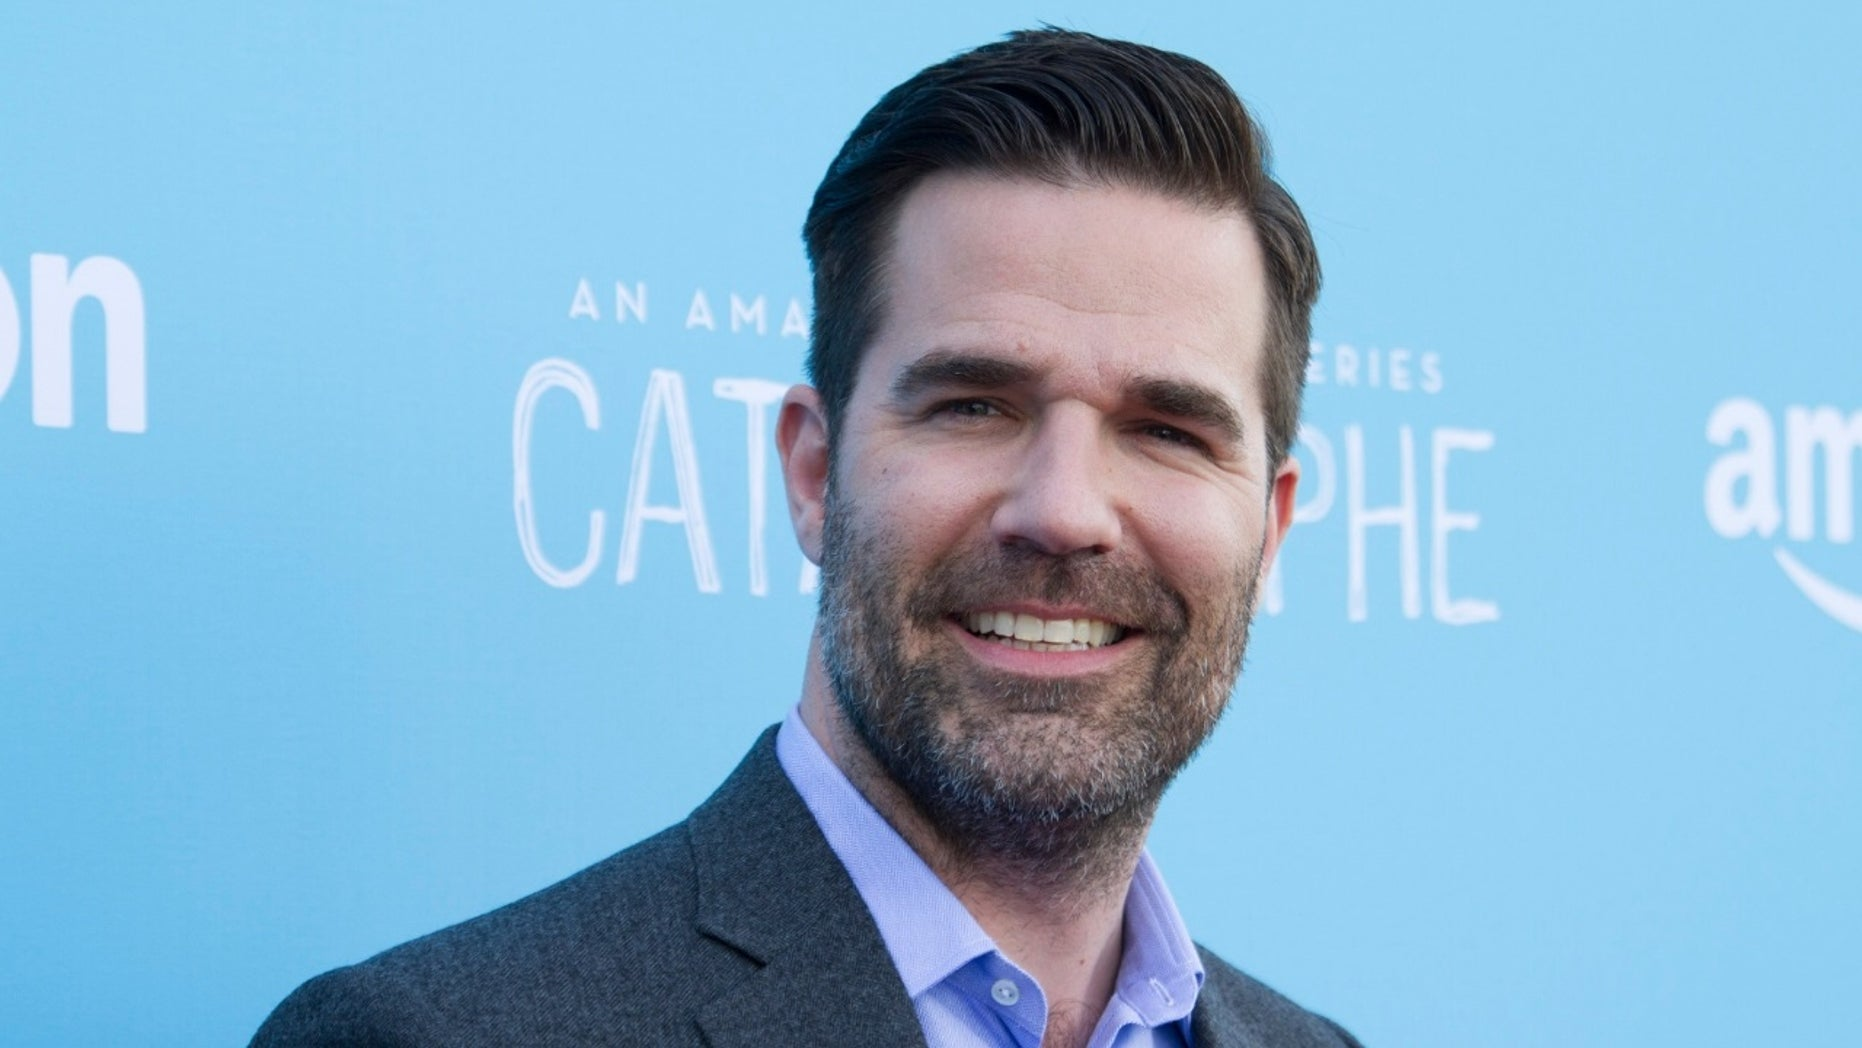 Comedian Rob Delaney, whose 2-year-old son died in January, said the intended audience for his book is other parents of sick children.